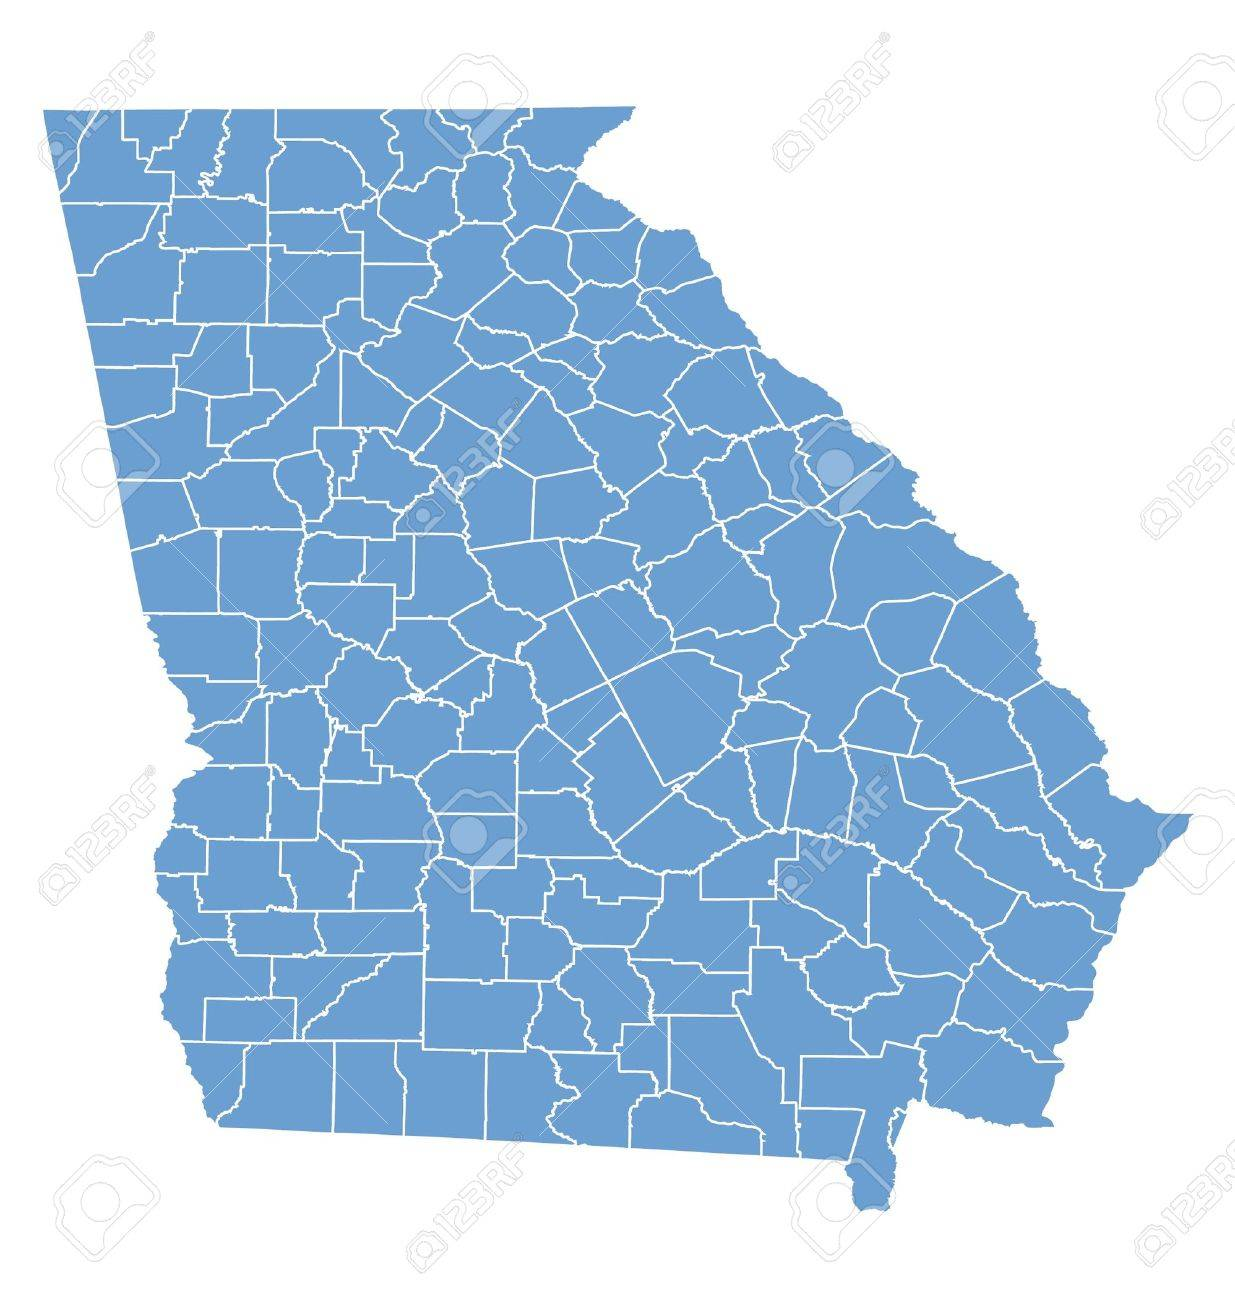 State Map Of Georgia By Counties Royalty Free Cliparts Vectors - Maps of georgia counties